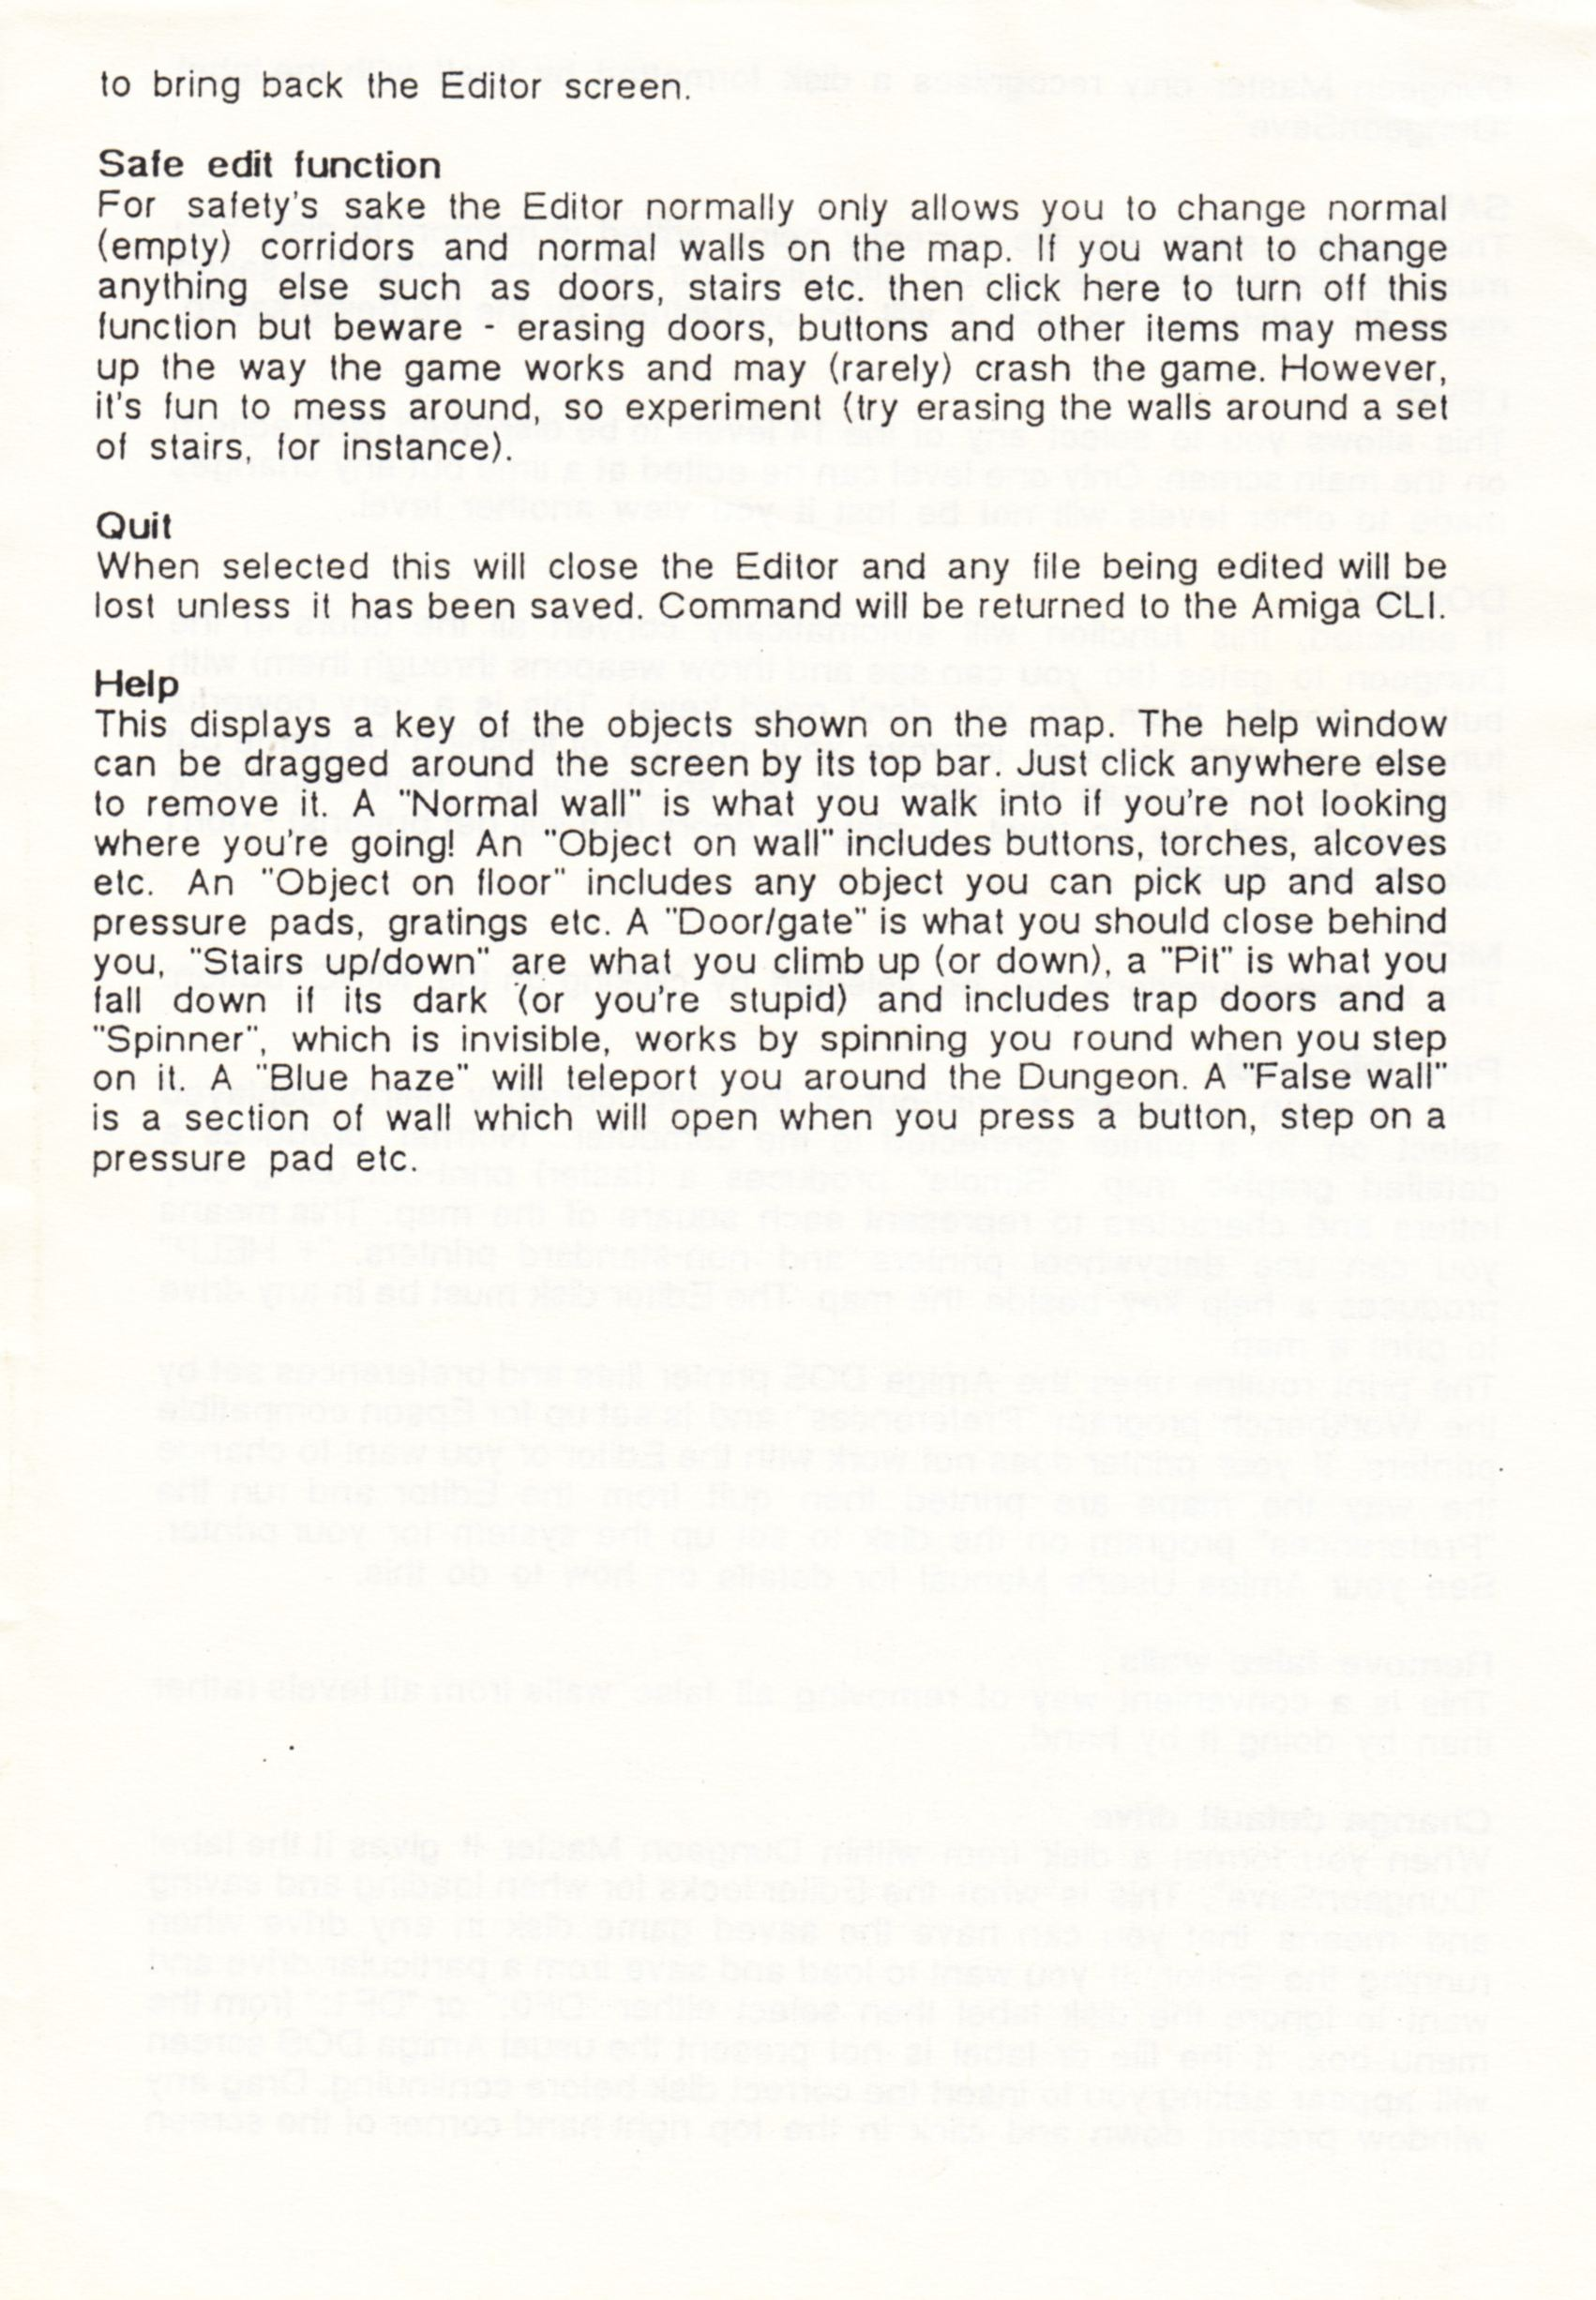 Tool - The Dungeon Master Editor - UK - Amiga - Amiga Manual - Page 004 - Scan